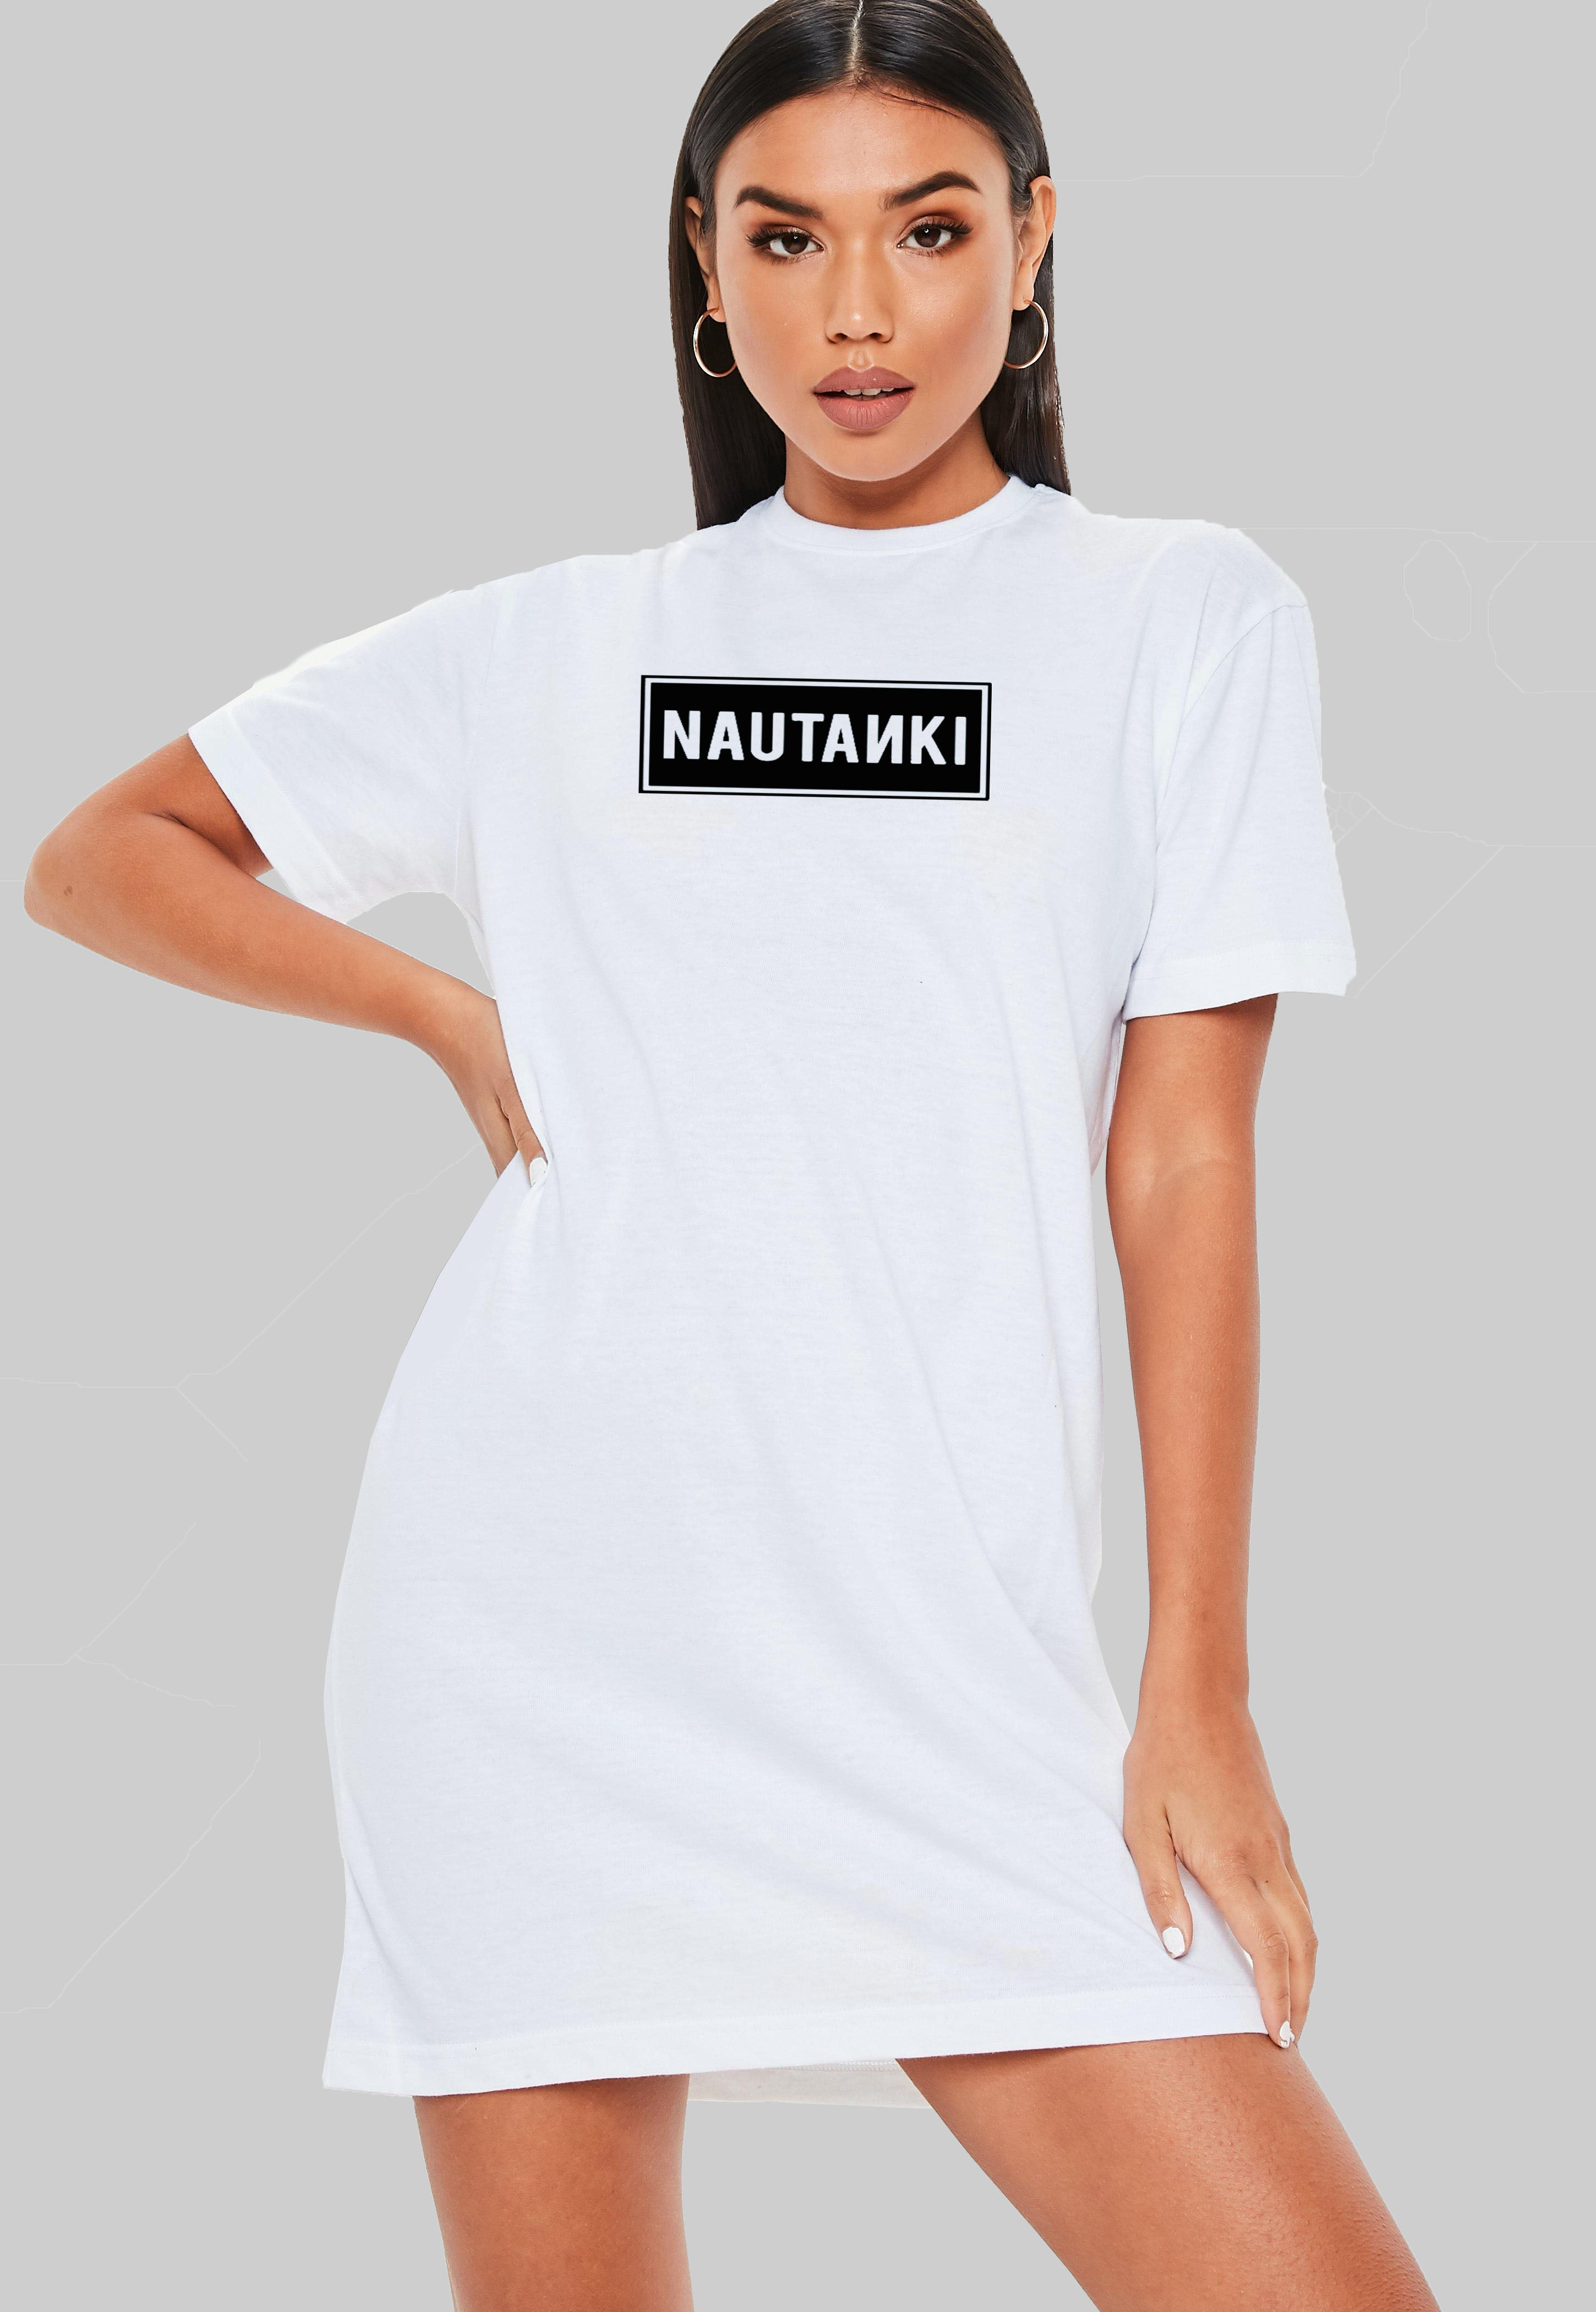 Nautanki T-Shirt Dress